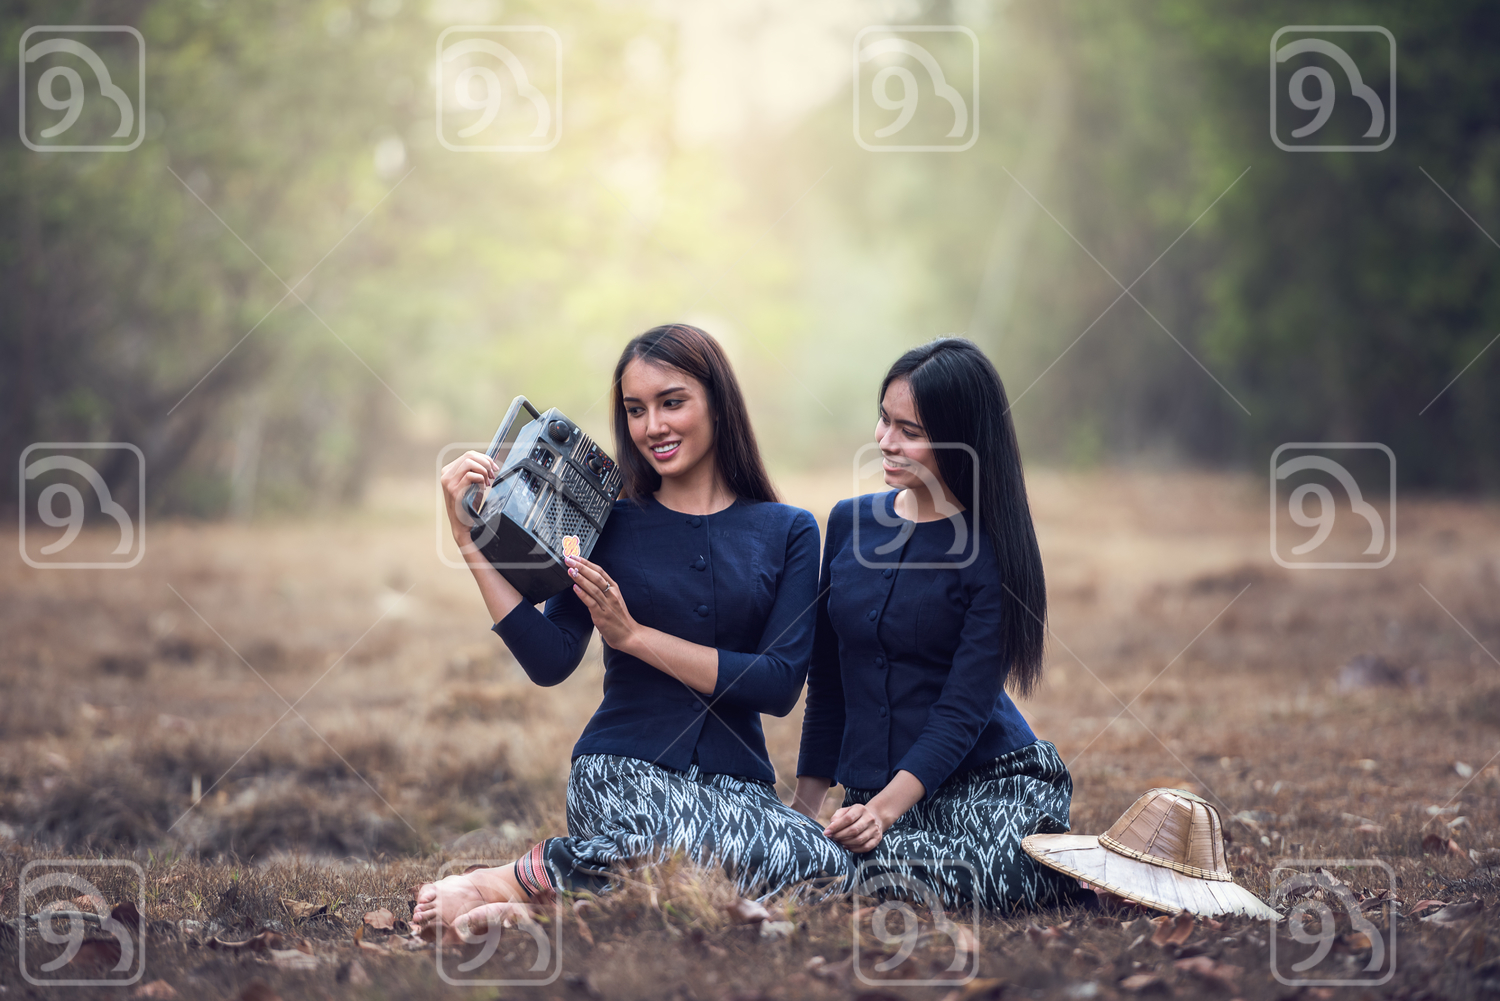 Woman Holding Radio in grass field